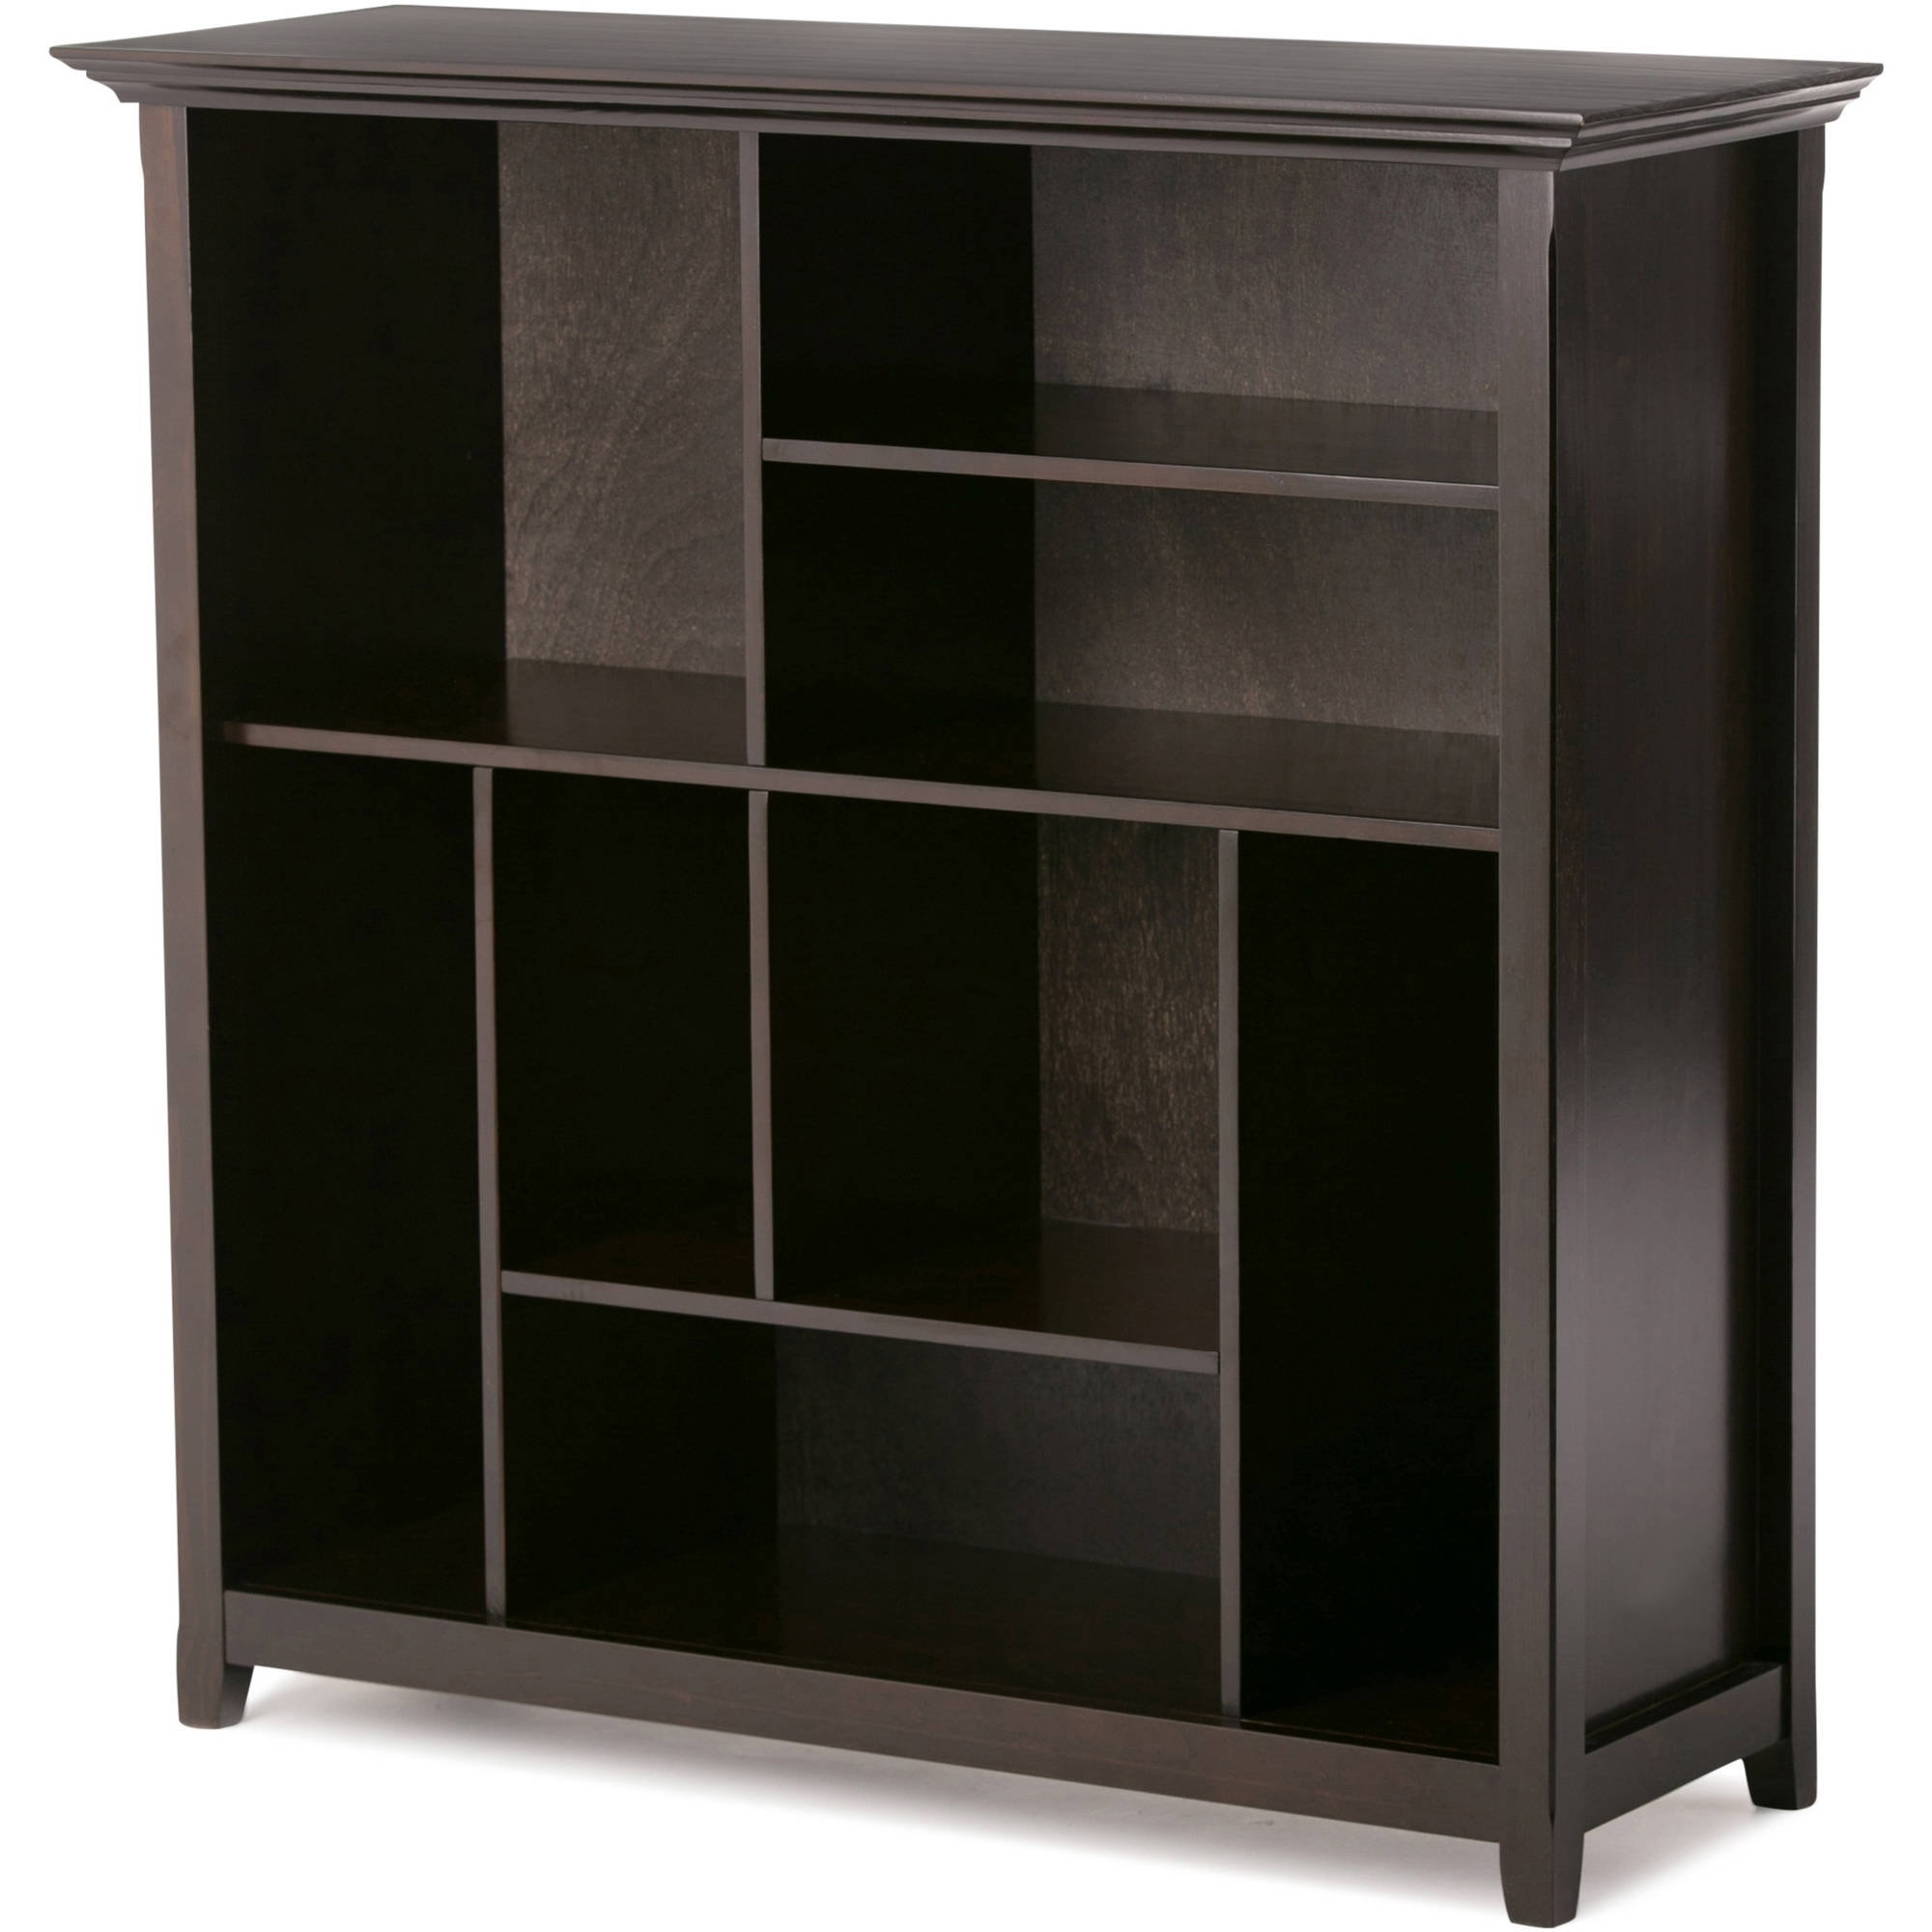 Newest Cube Bookcases Regarding Simpli Home Amherst Multi Cube Bookcase & Storage Unit – Walmart (View 13 of 15)